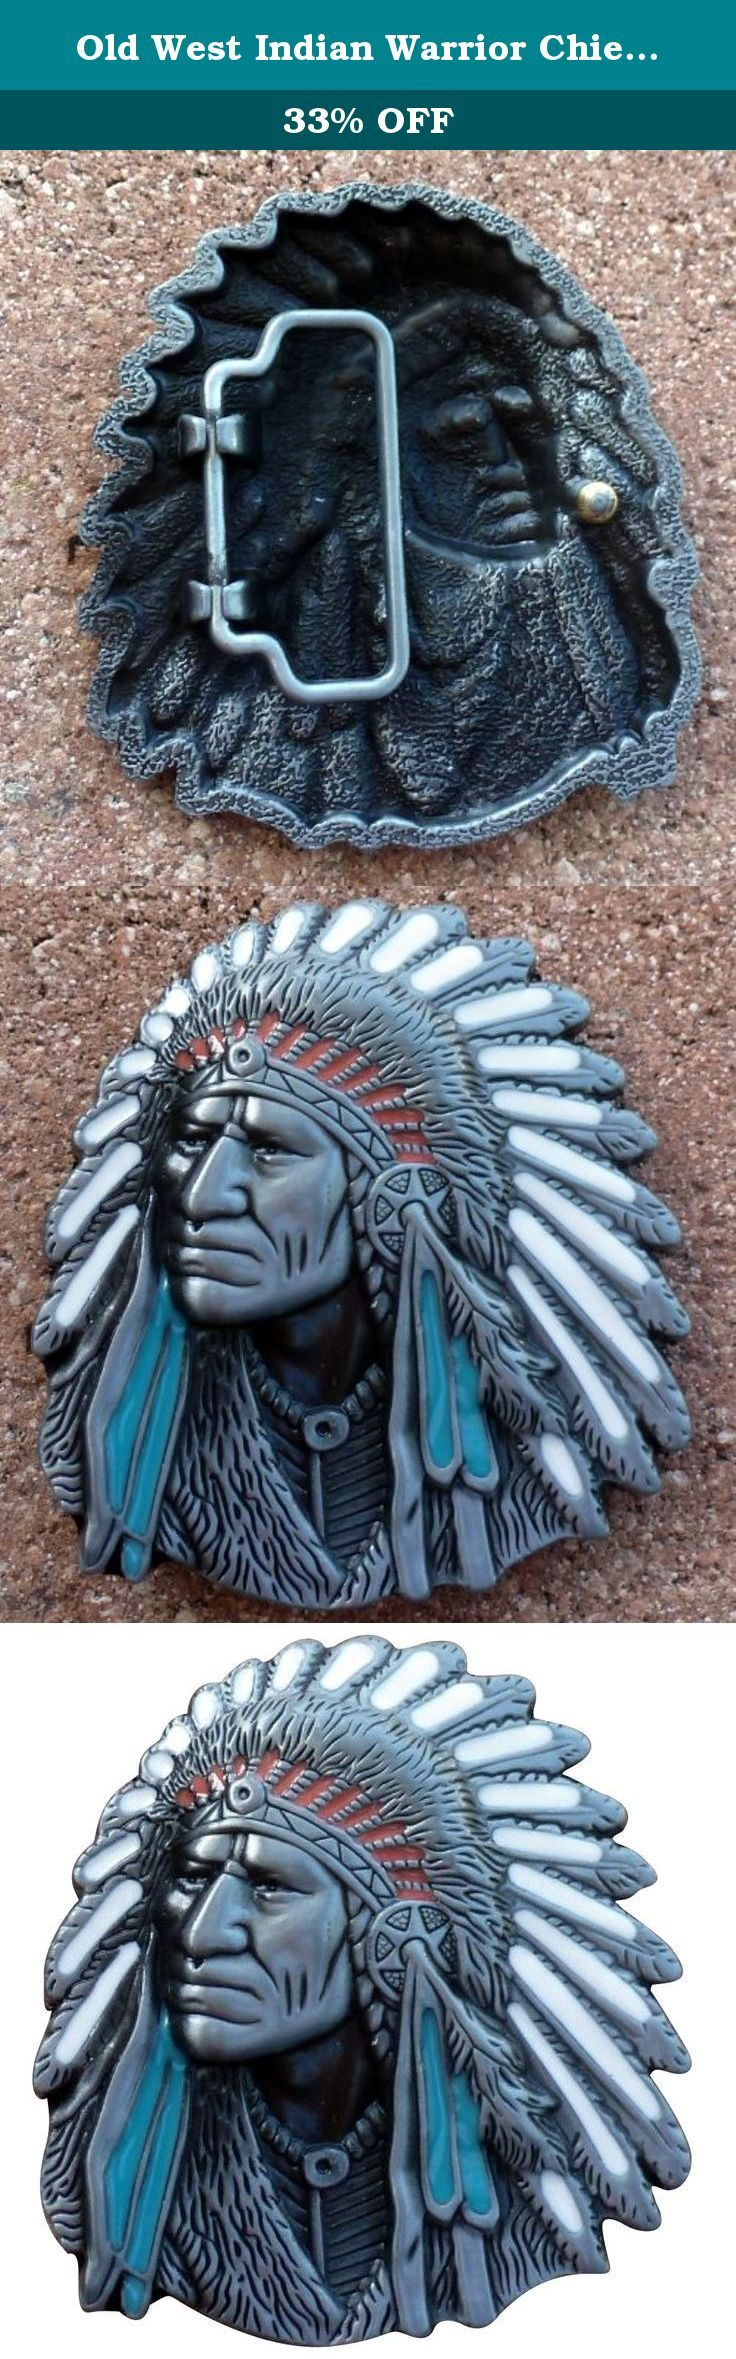 "Old West Indian Warrior Chief belt buckle biker motorcycle Native American. Old West Indian Warrior Chief belt buckle biker motorcycle Native American. suitable for 4cm ( 1.58') wide belt. buckle is roughly 3"" x 3""."